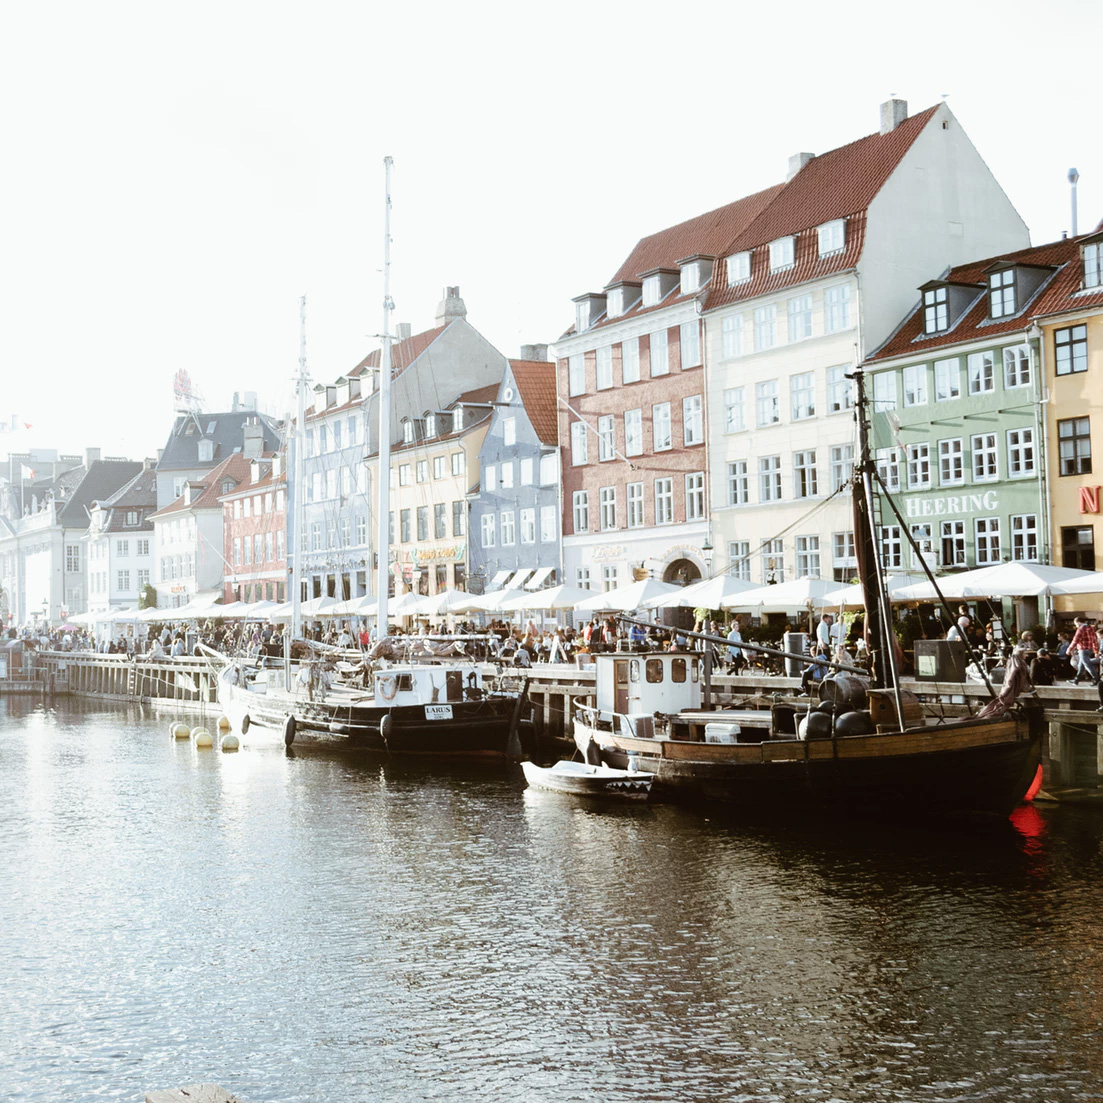 Copenhagen   + January 23.-24. 2019 + October 23.-24. 2019   Click here for signup & info